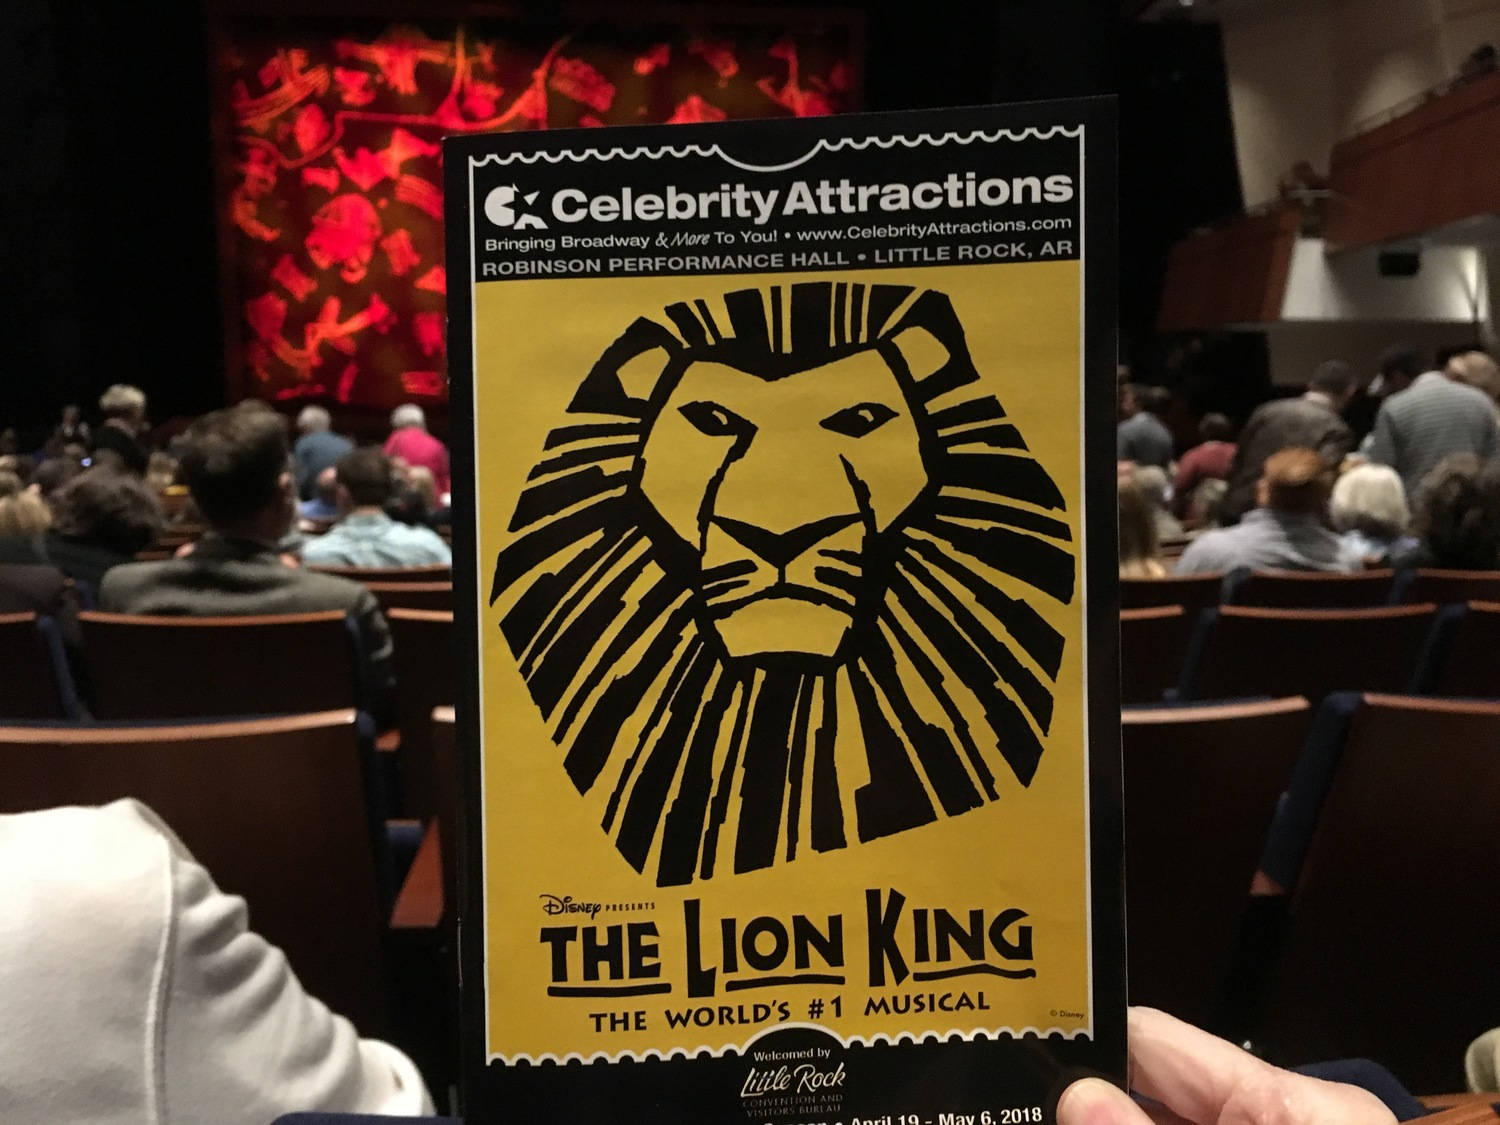 Regional Roundup: Top New Features This Week Around Our BroadwayWorld 4/27 - THE LION KING, SCHOOL OF ROCK, SISTER ACT and More!